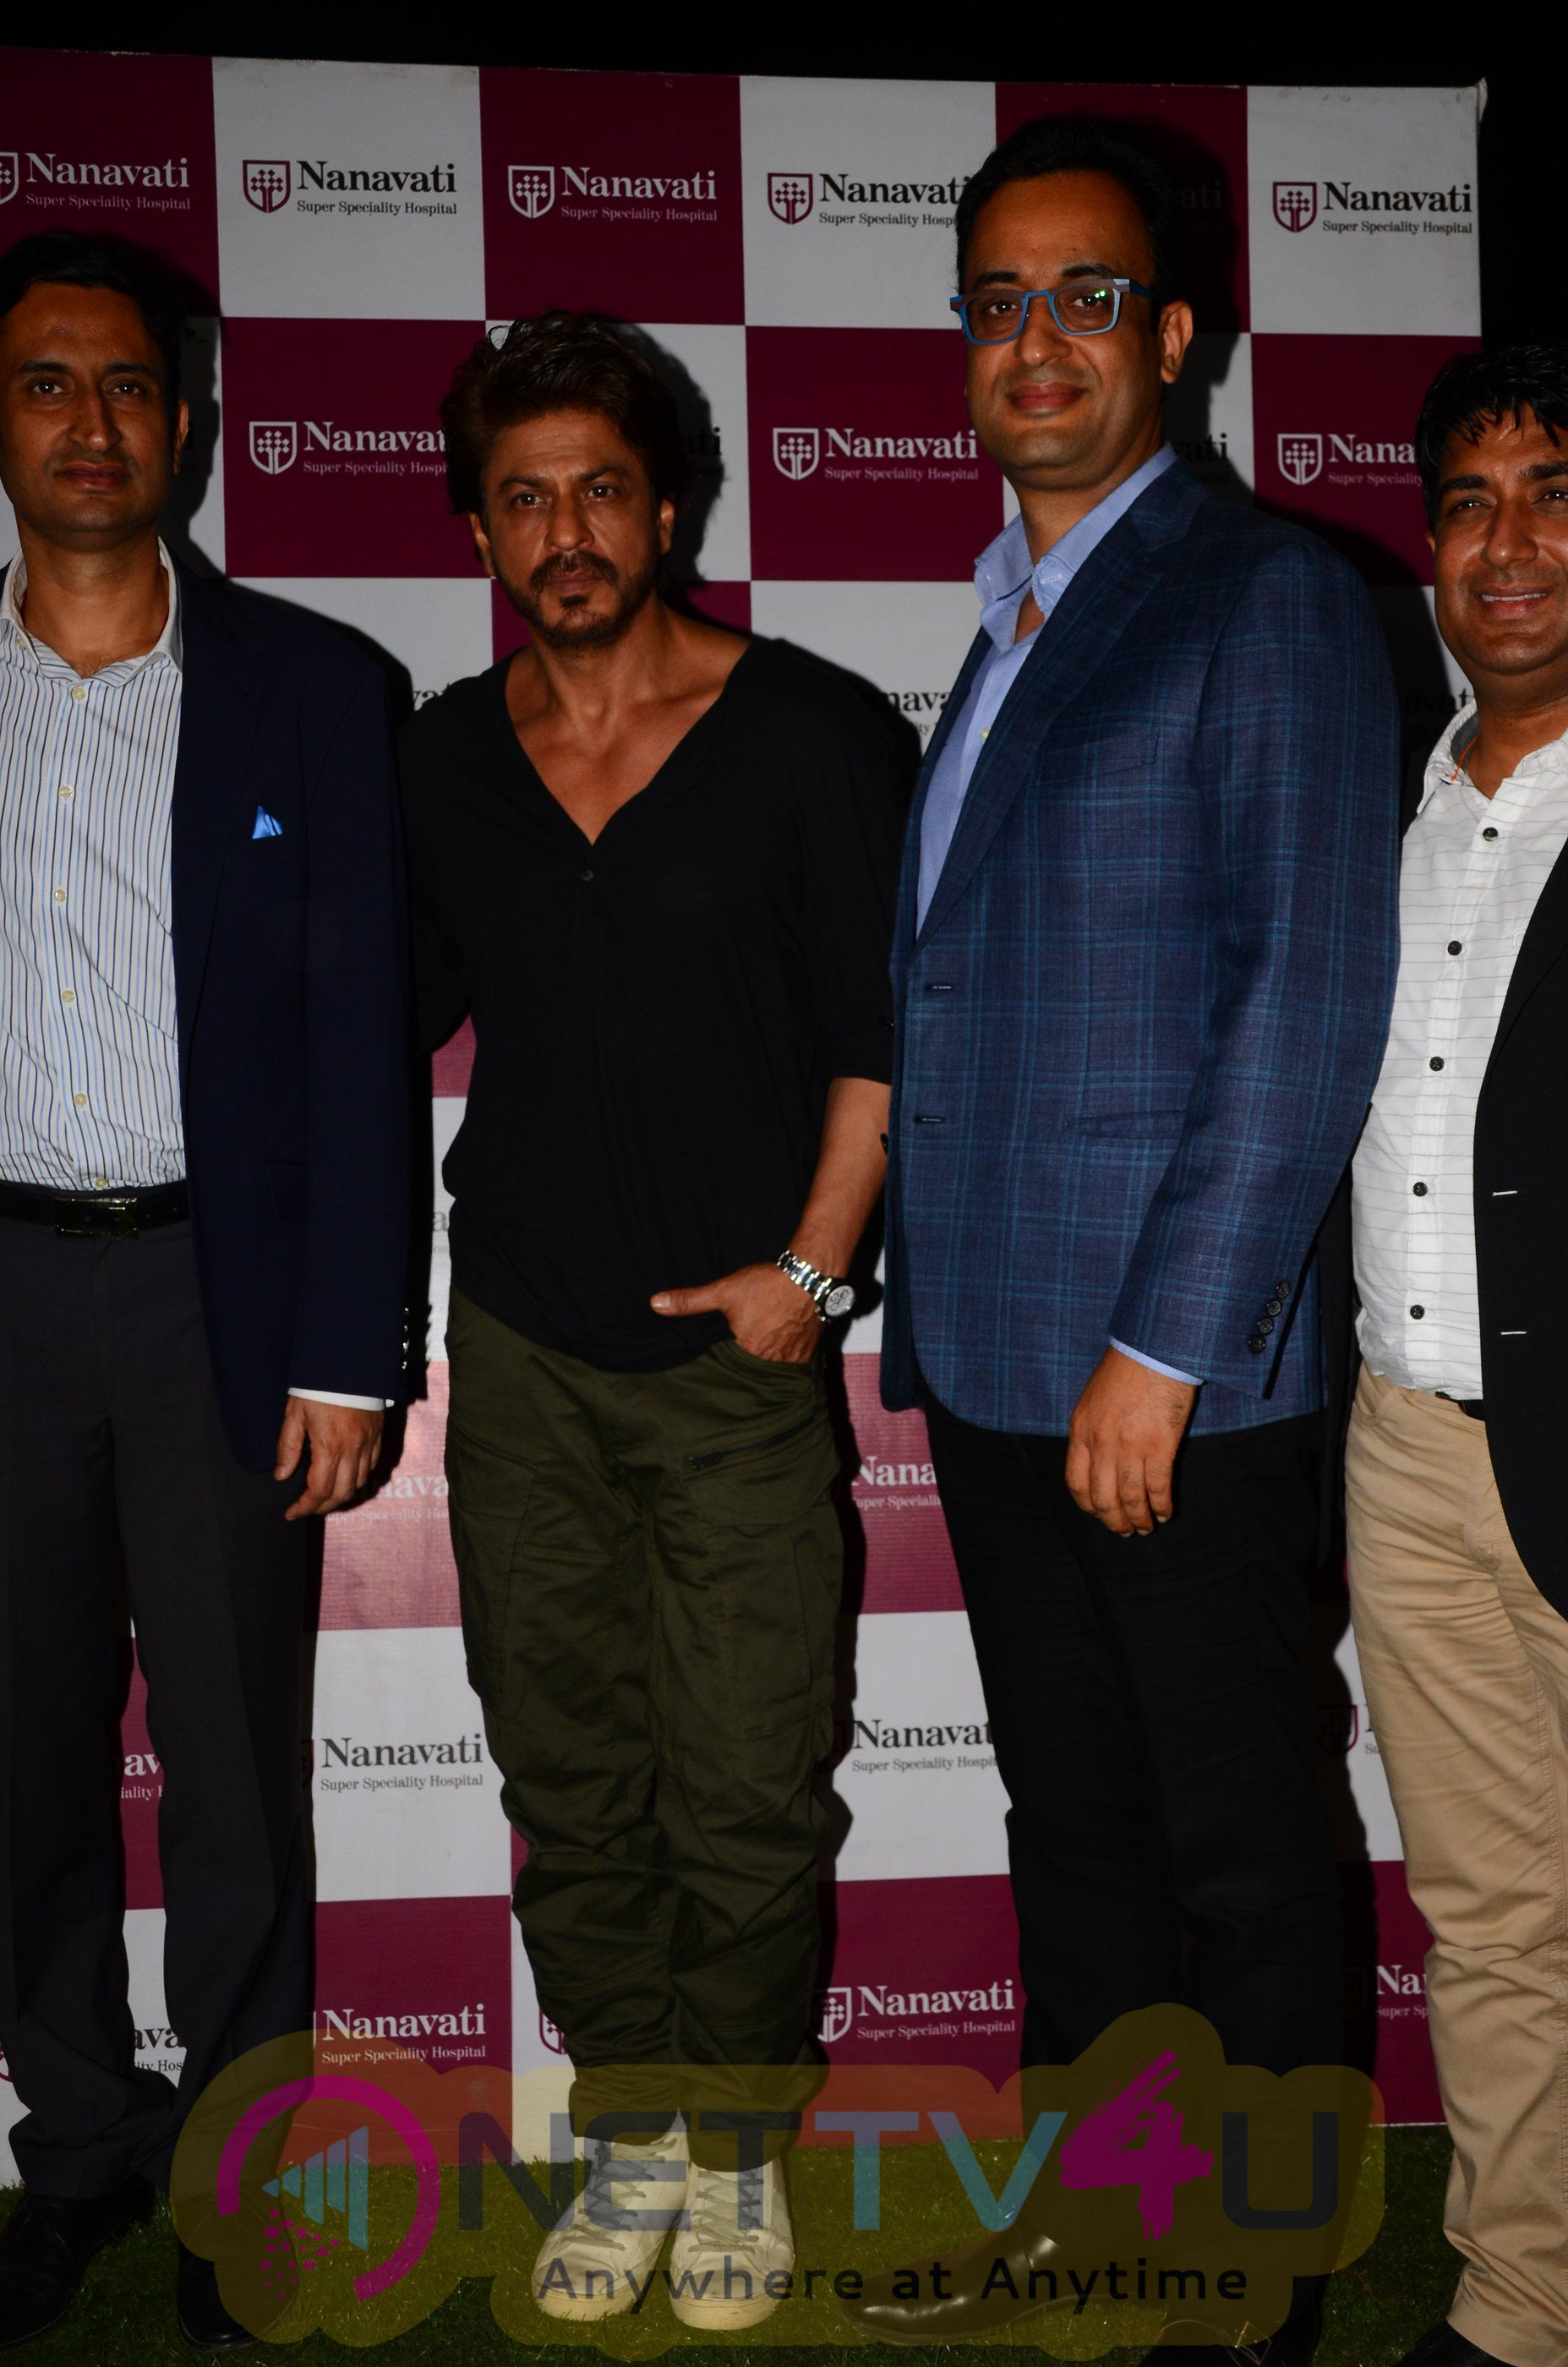 Excellent Photos Of Shah Rukh Khan Launches Bone Marrow Transplant Centre & Birthing Centre At Nanavati Super Speciality Hospital